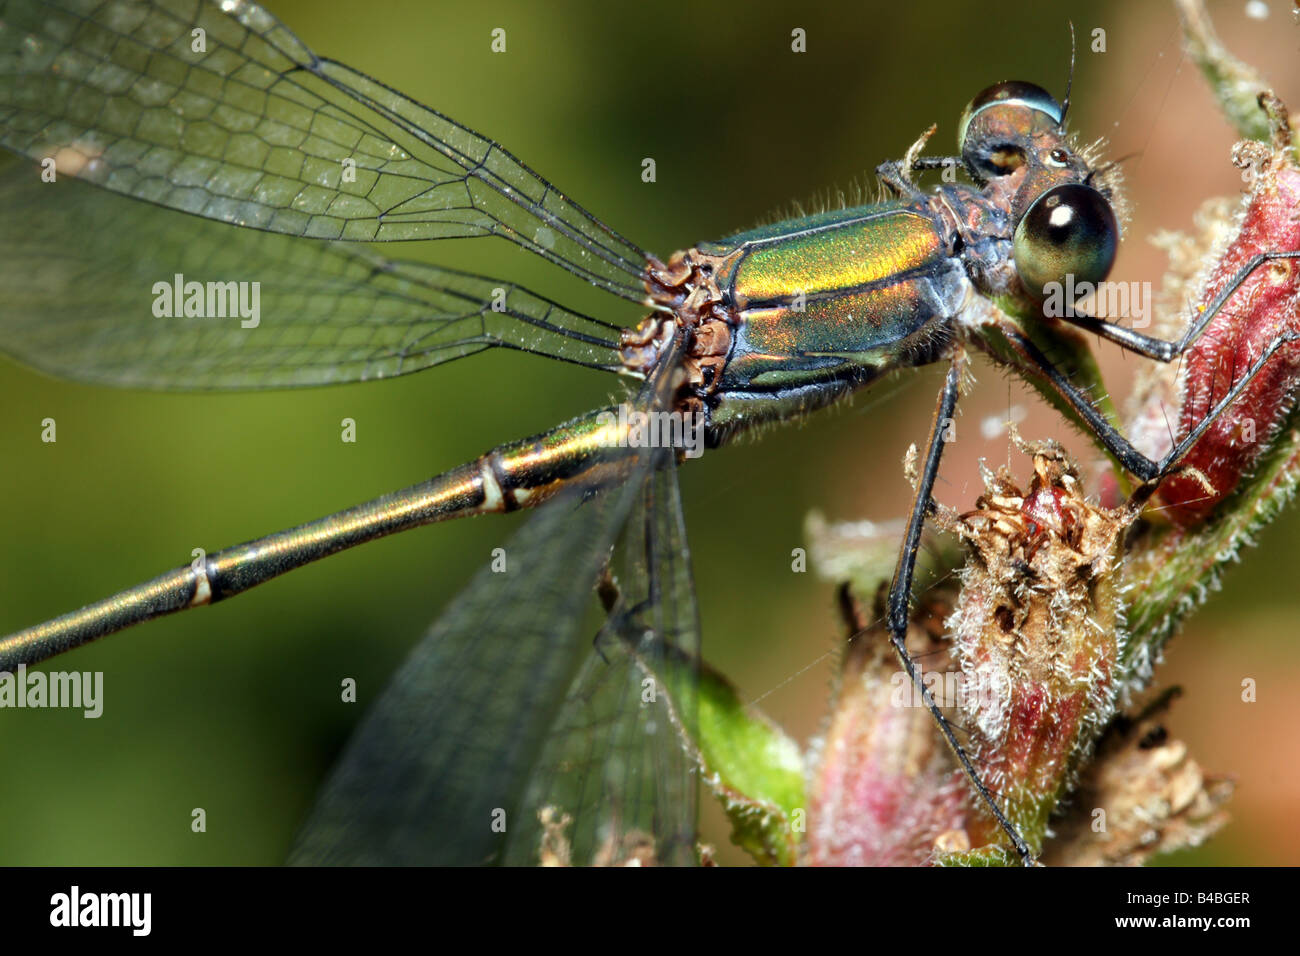 Facet libellule yeux composite corps entier tête avant close up detail wings insect sitting demoiselle fly Photo Stock